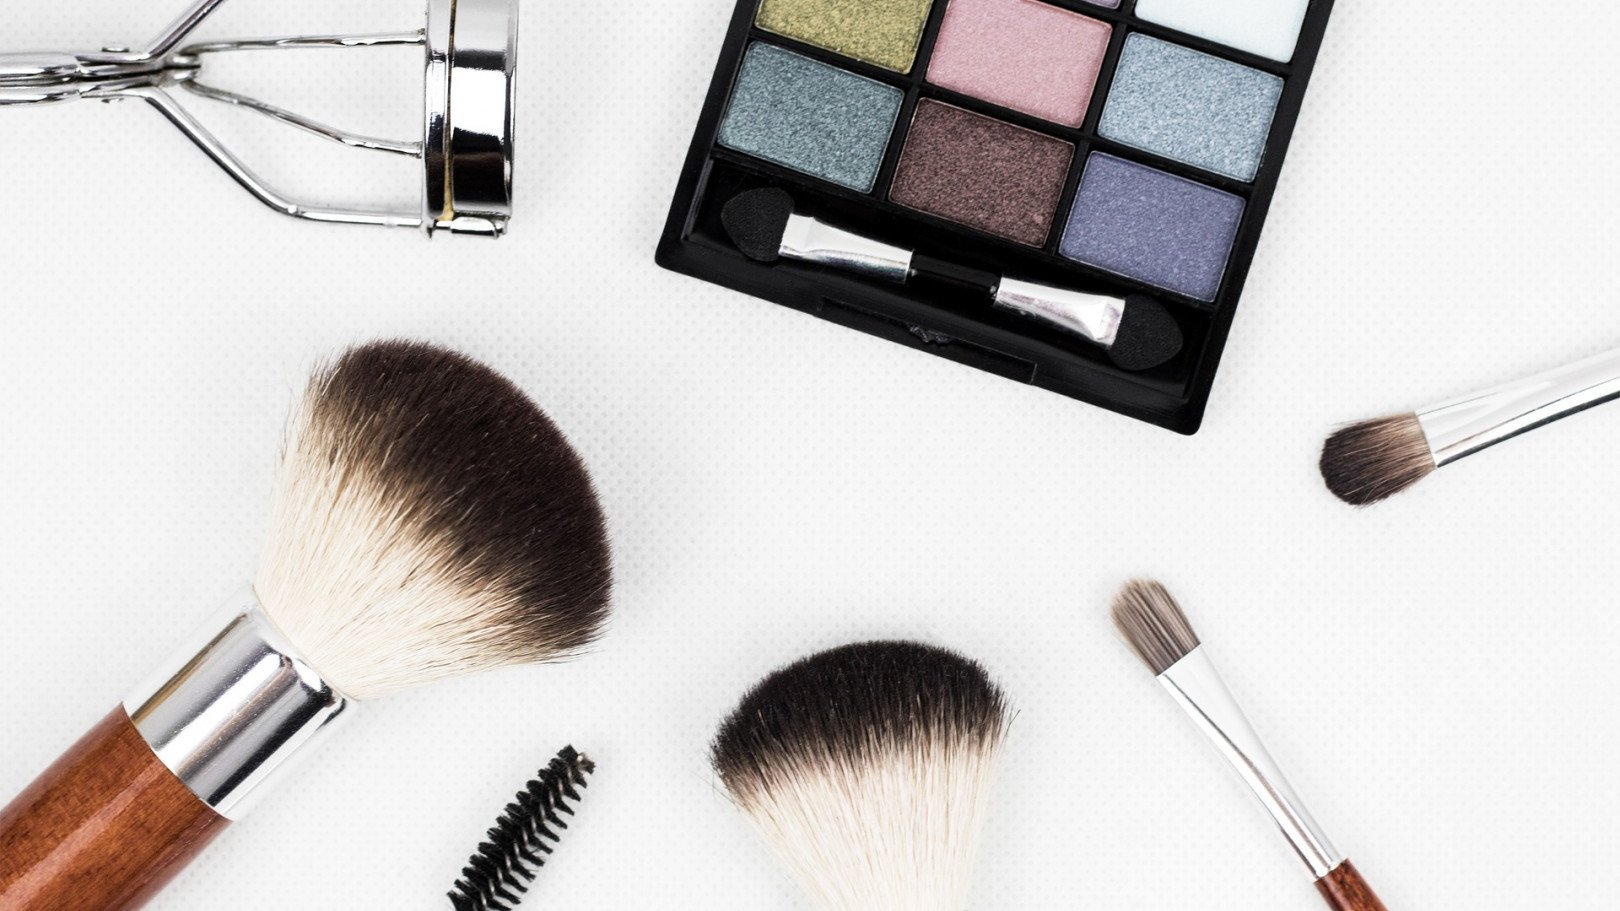 Test Target Beauty Products Before you Buy with AR Makeup Studio | All3DP